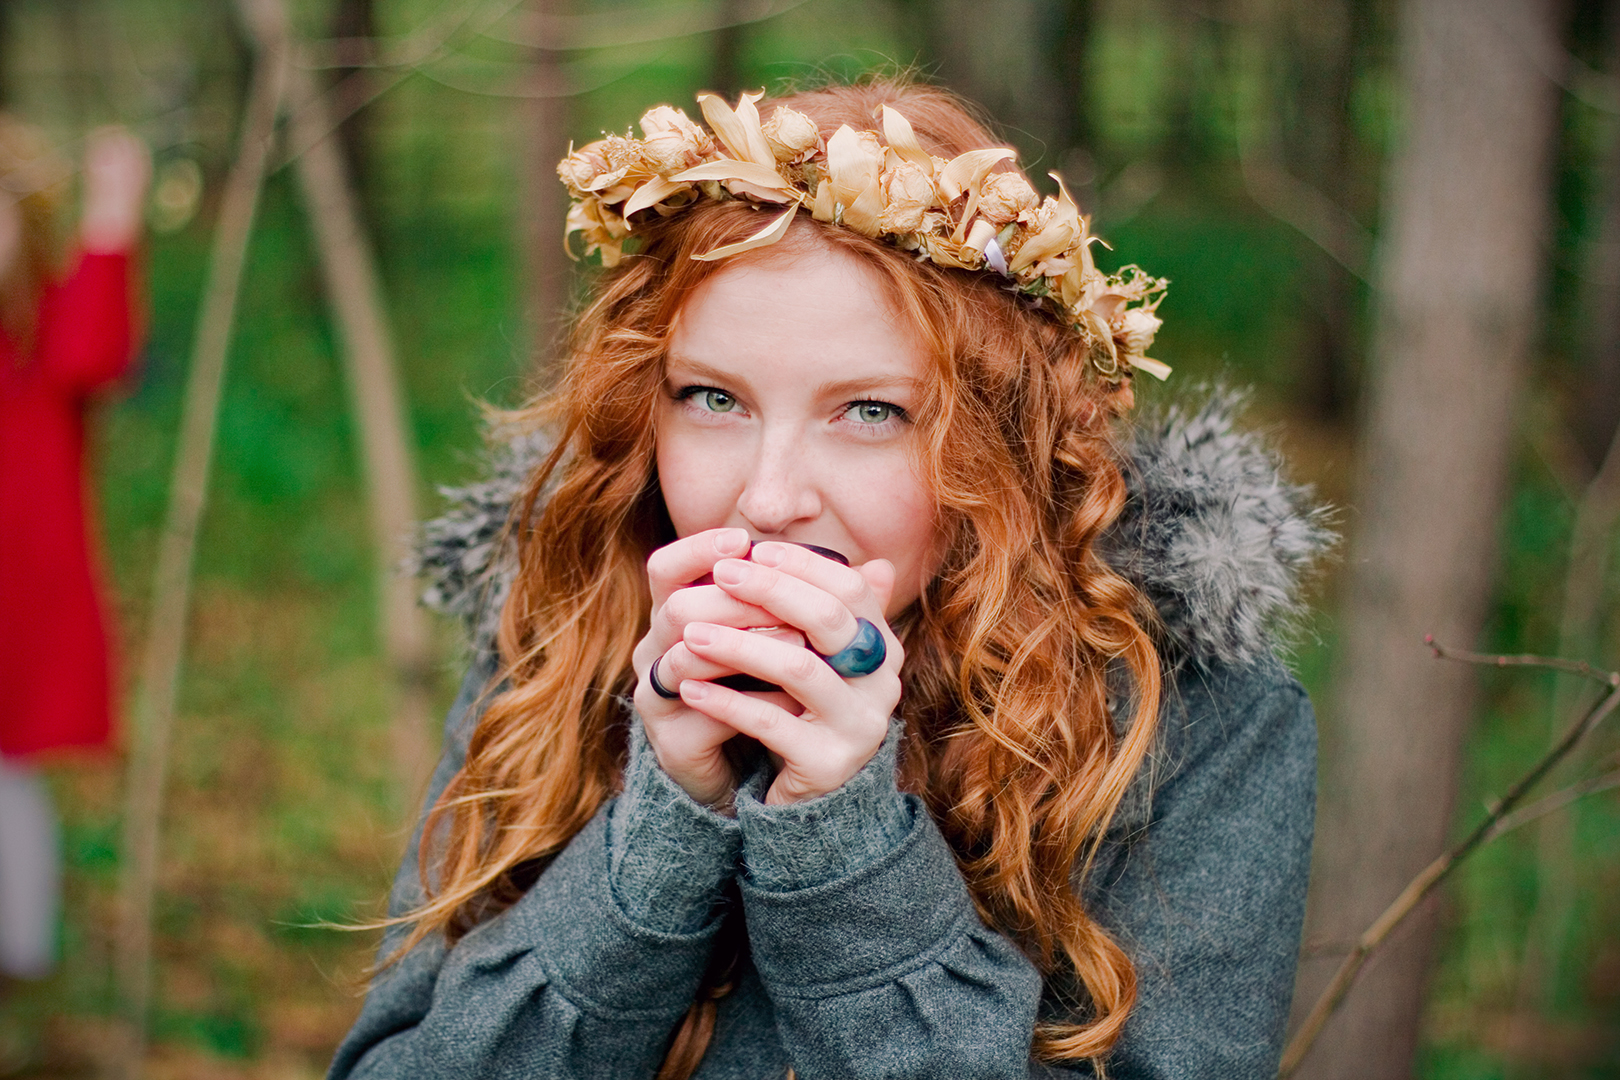 redhead with a flower crown drinking tea by Ailera Stone